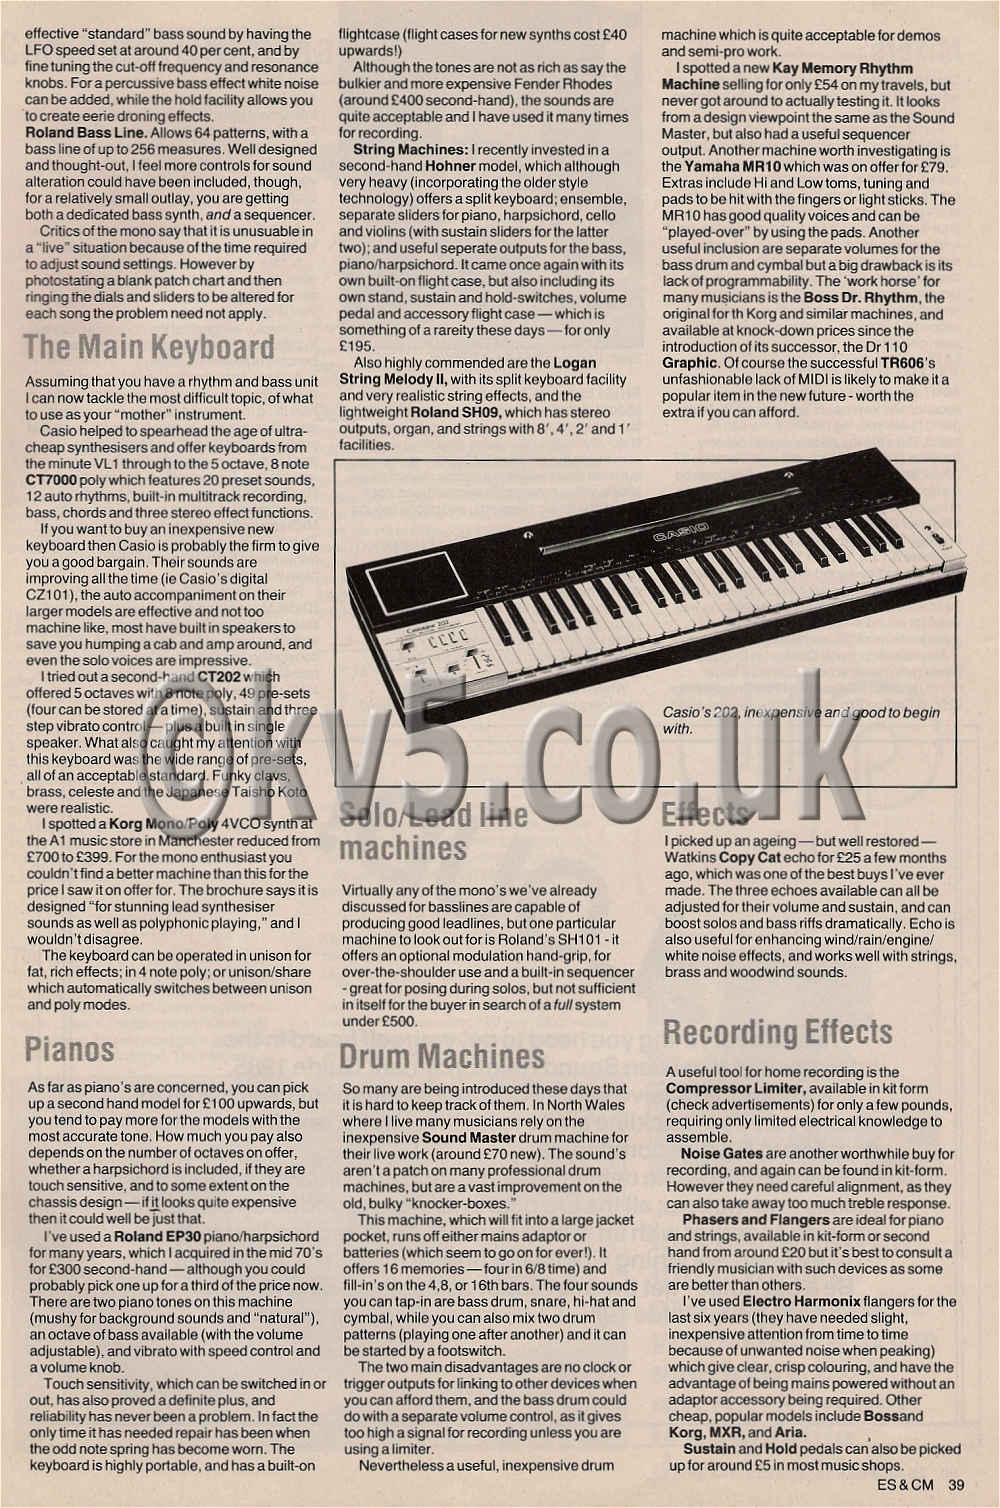 1985 Synthesizers